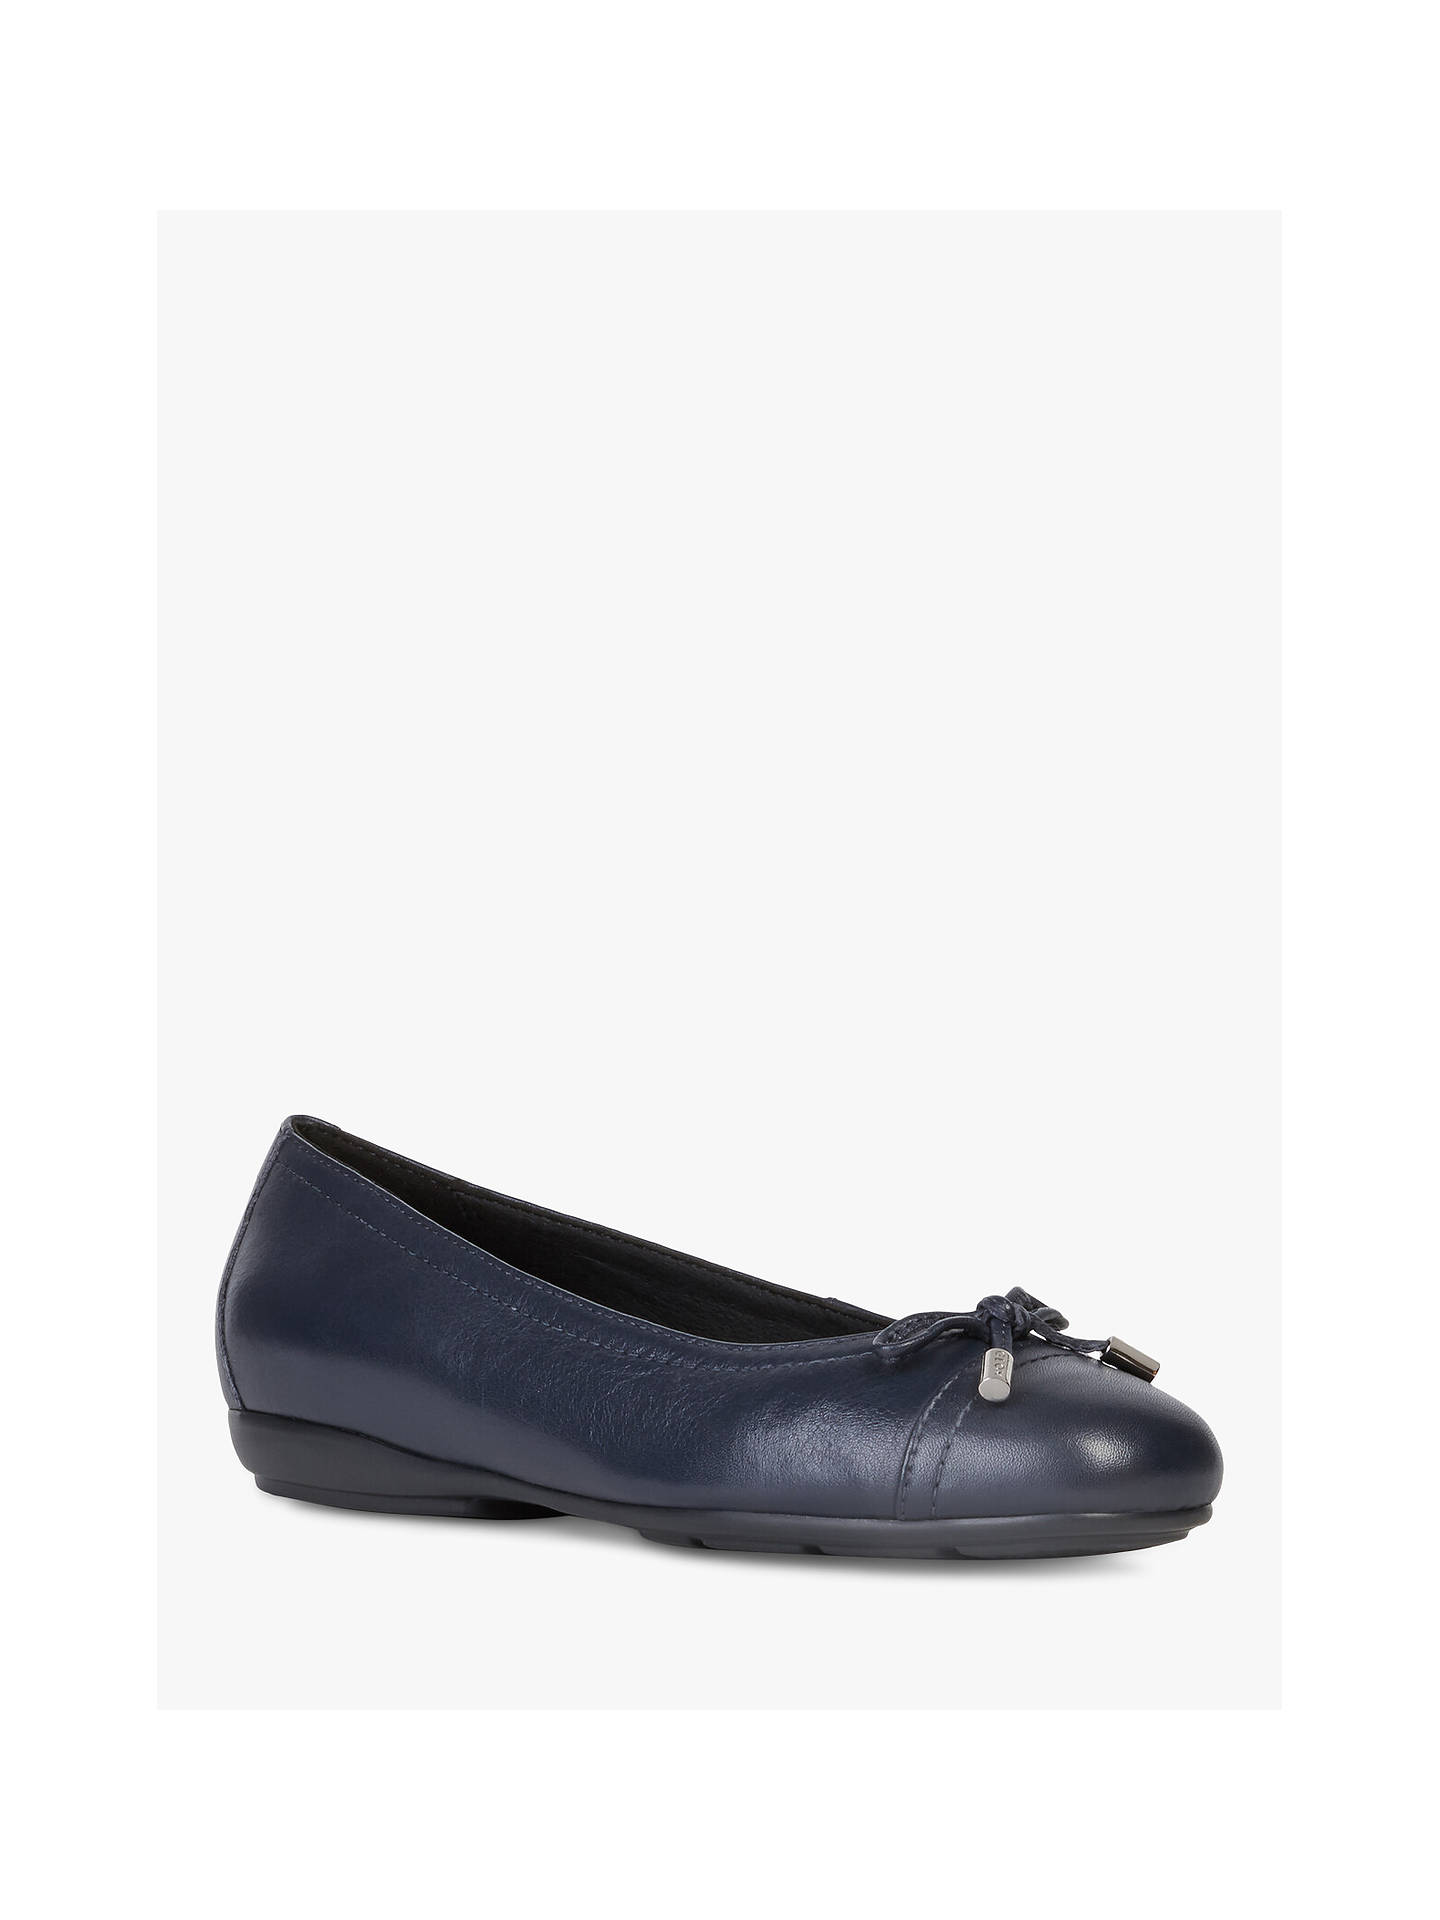 Buy Geox Women's Annytah Leather Pumps, Navy, 4 Online at johnlewis.com